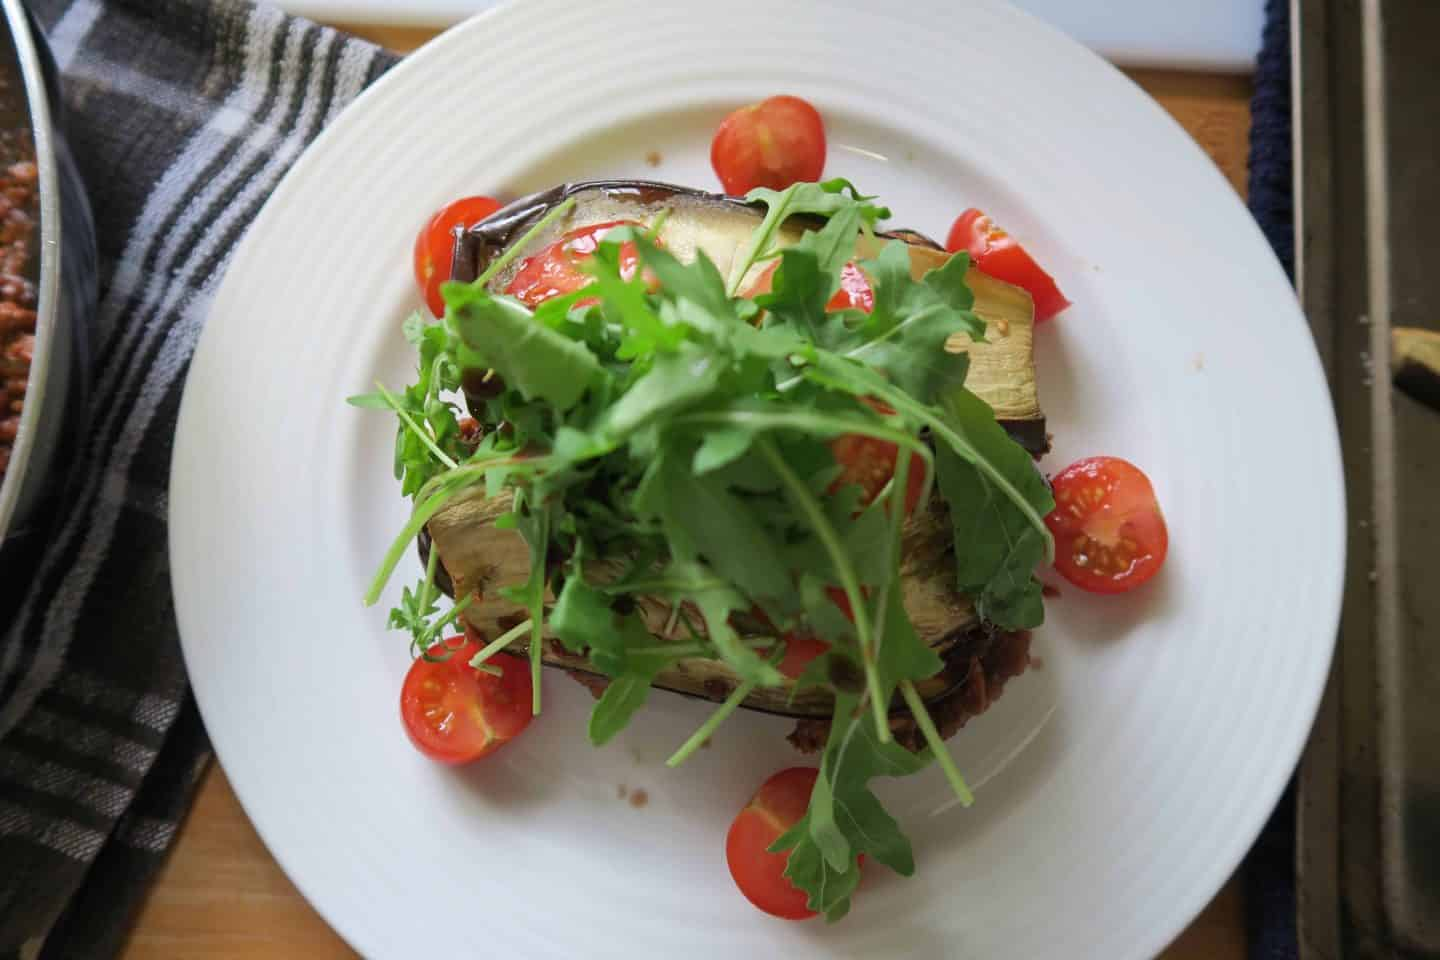 Cooking up gluten free meals with The Mindful Chef